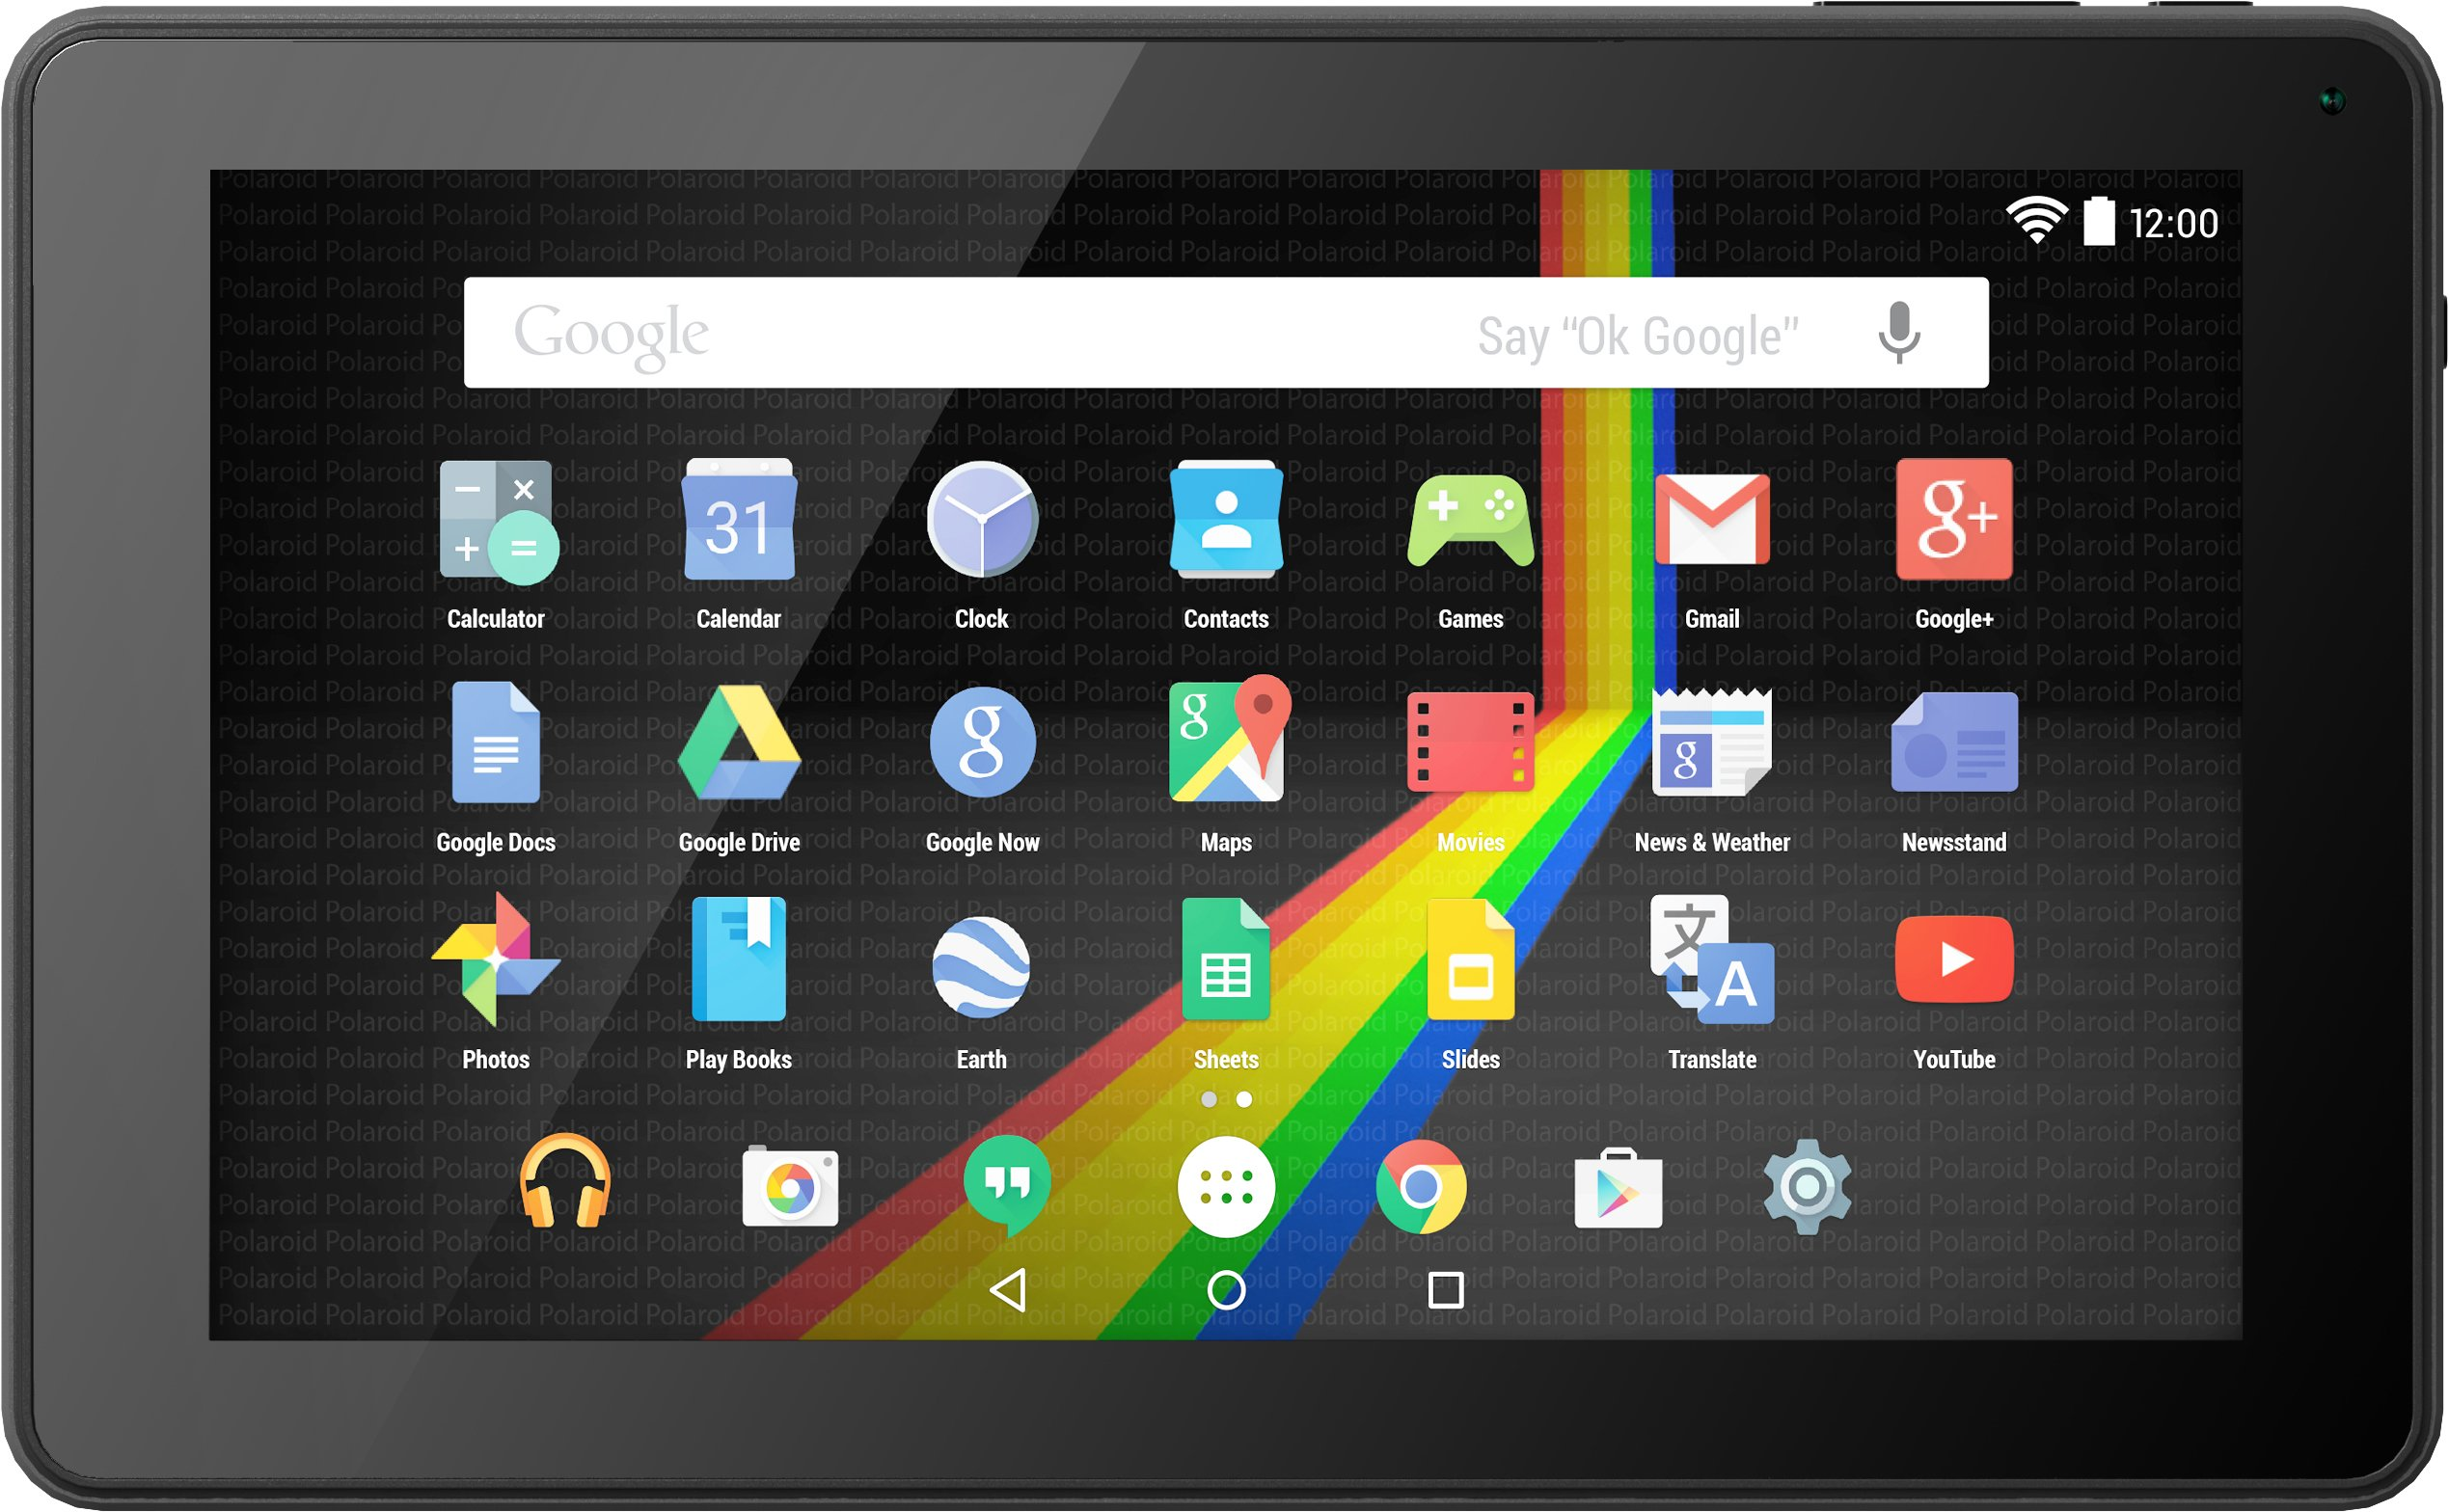 Polaroid P902BK Quad-Core 9'' Tablet With Android 5.1 Lollipop, 2 Cameras, Google Play